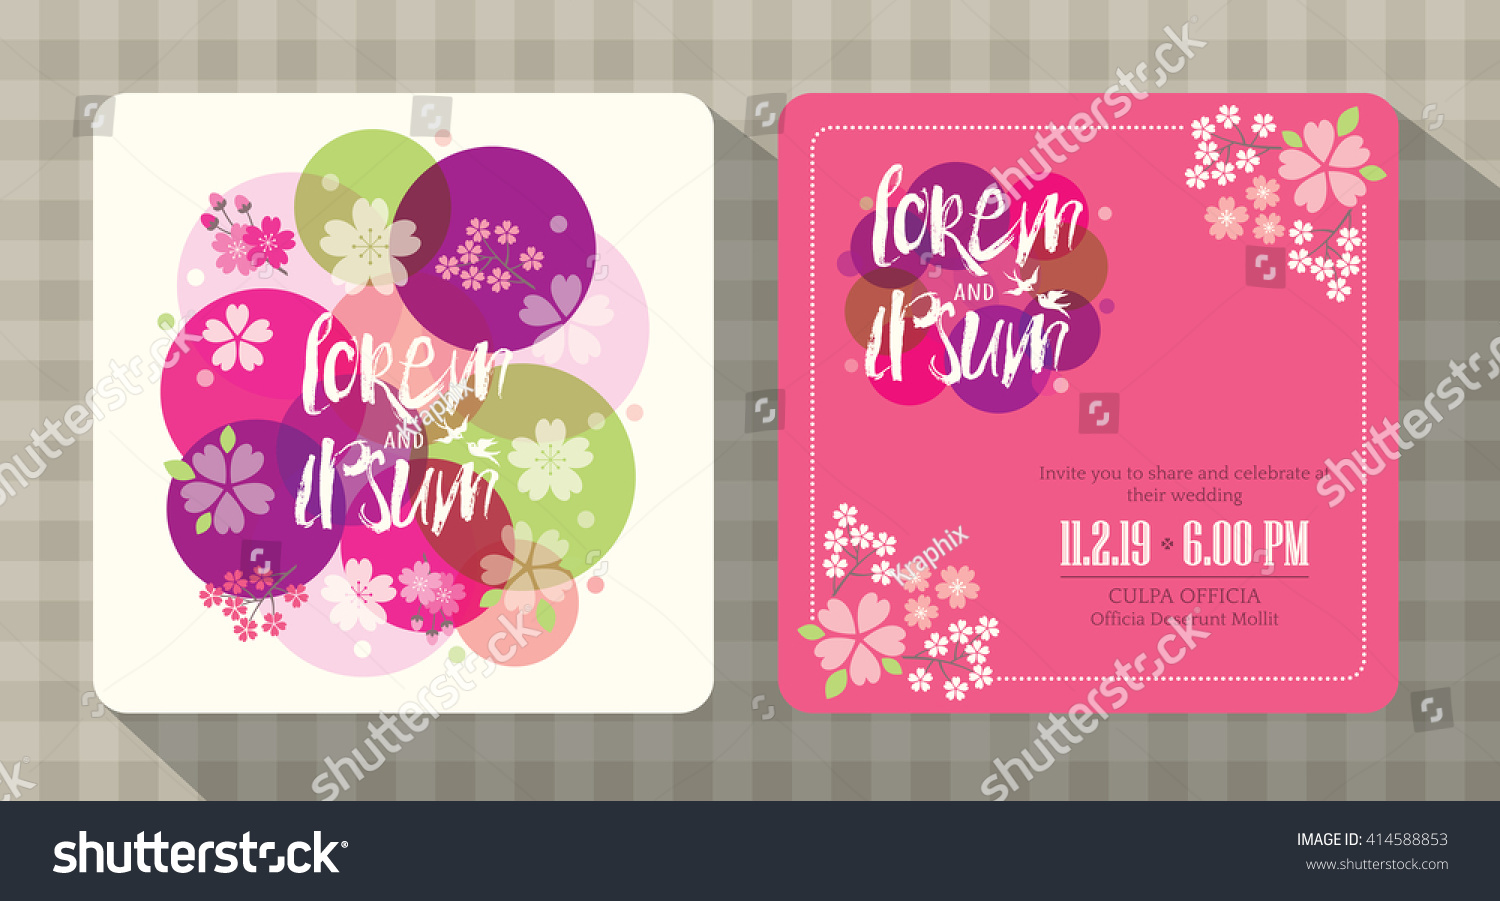 floral cherry blossom wedding invitation card stock vector 414588853 shutterstock. Black Bedroom Furniture Sets. Home Design Ideas